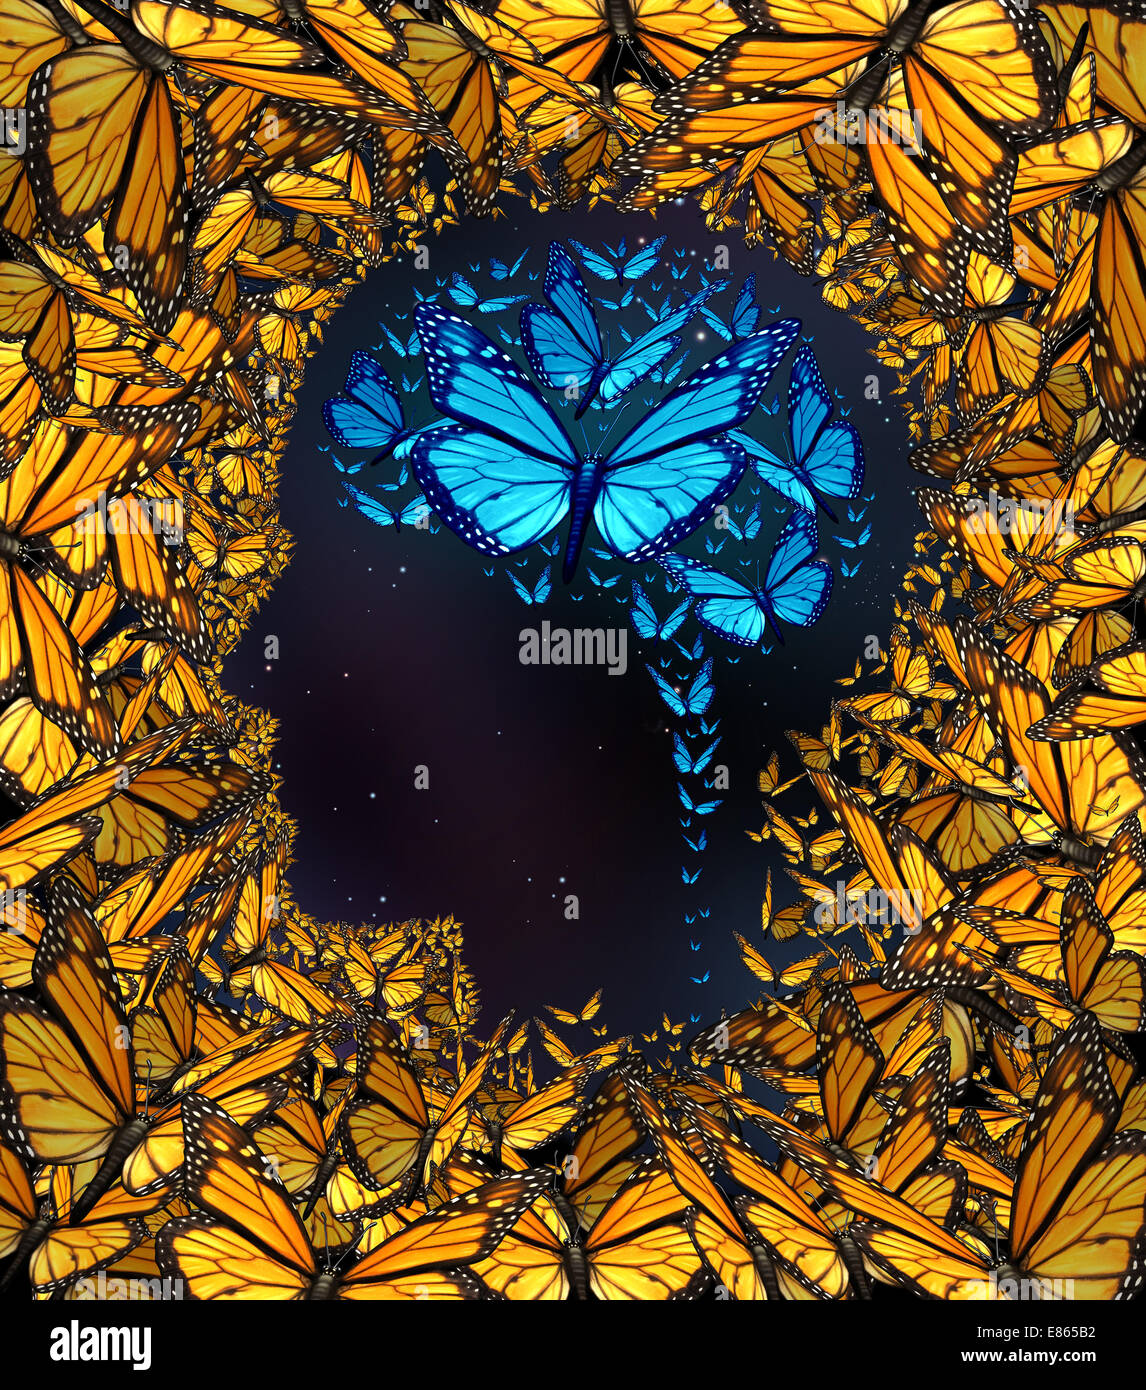 Inspiration concept and thinking potential metaphor as a group of butterflies in the shape of a human face and brain - Stock Image